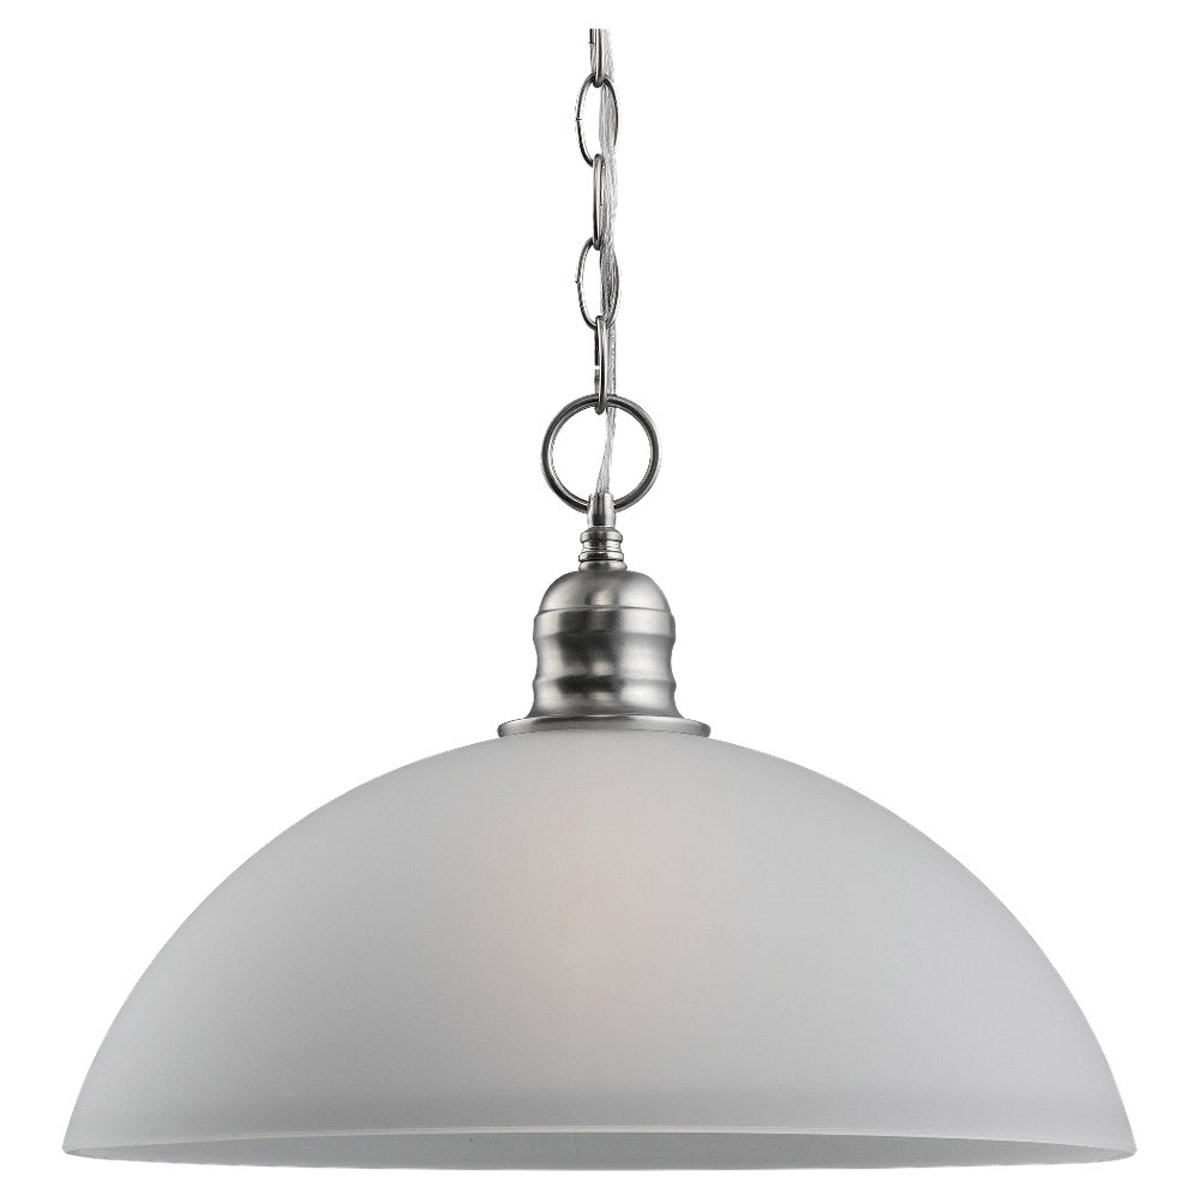 Sea Gull Lighting Linwood 1 Light Pendant in Brushed Nickel 65225-962 photo